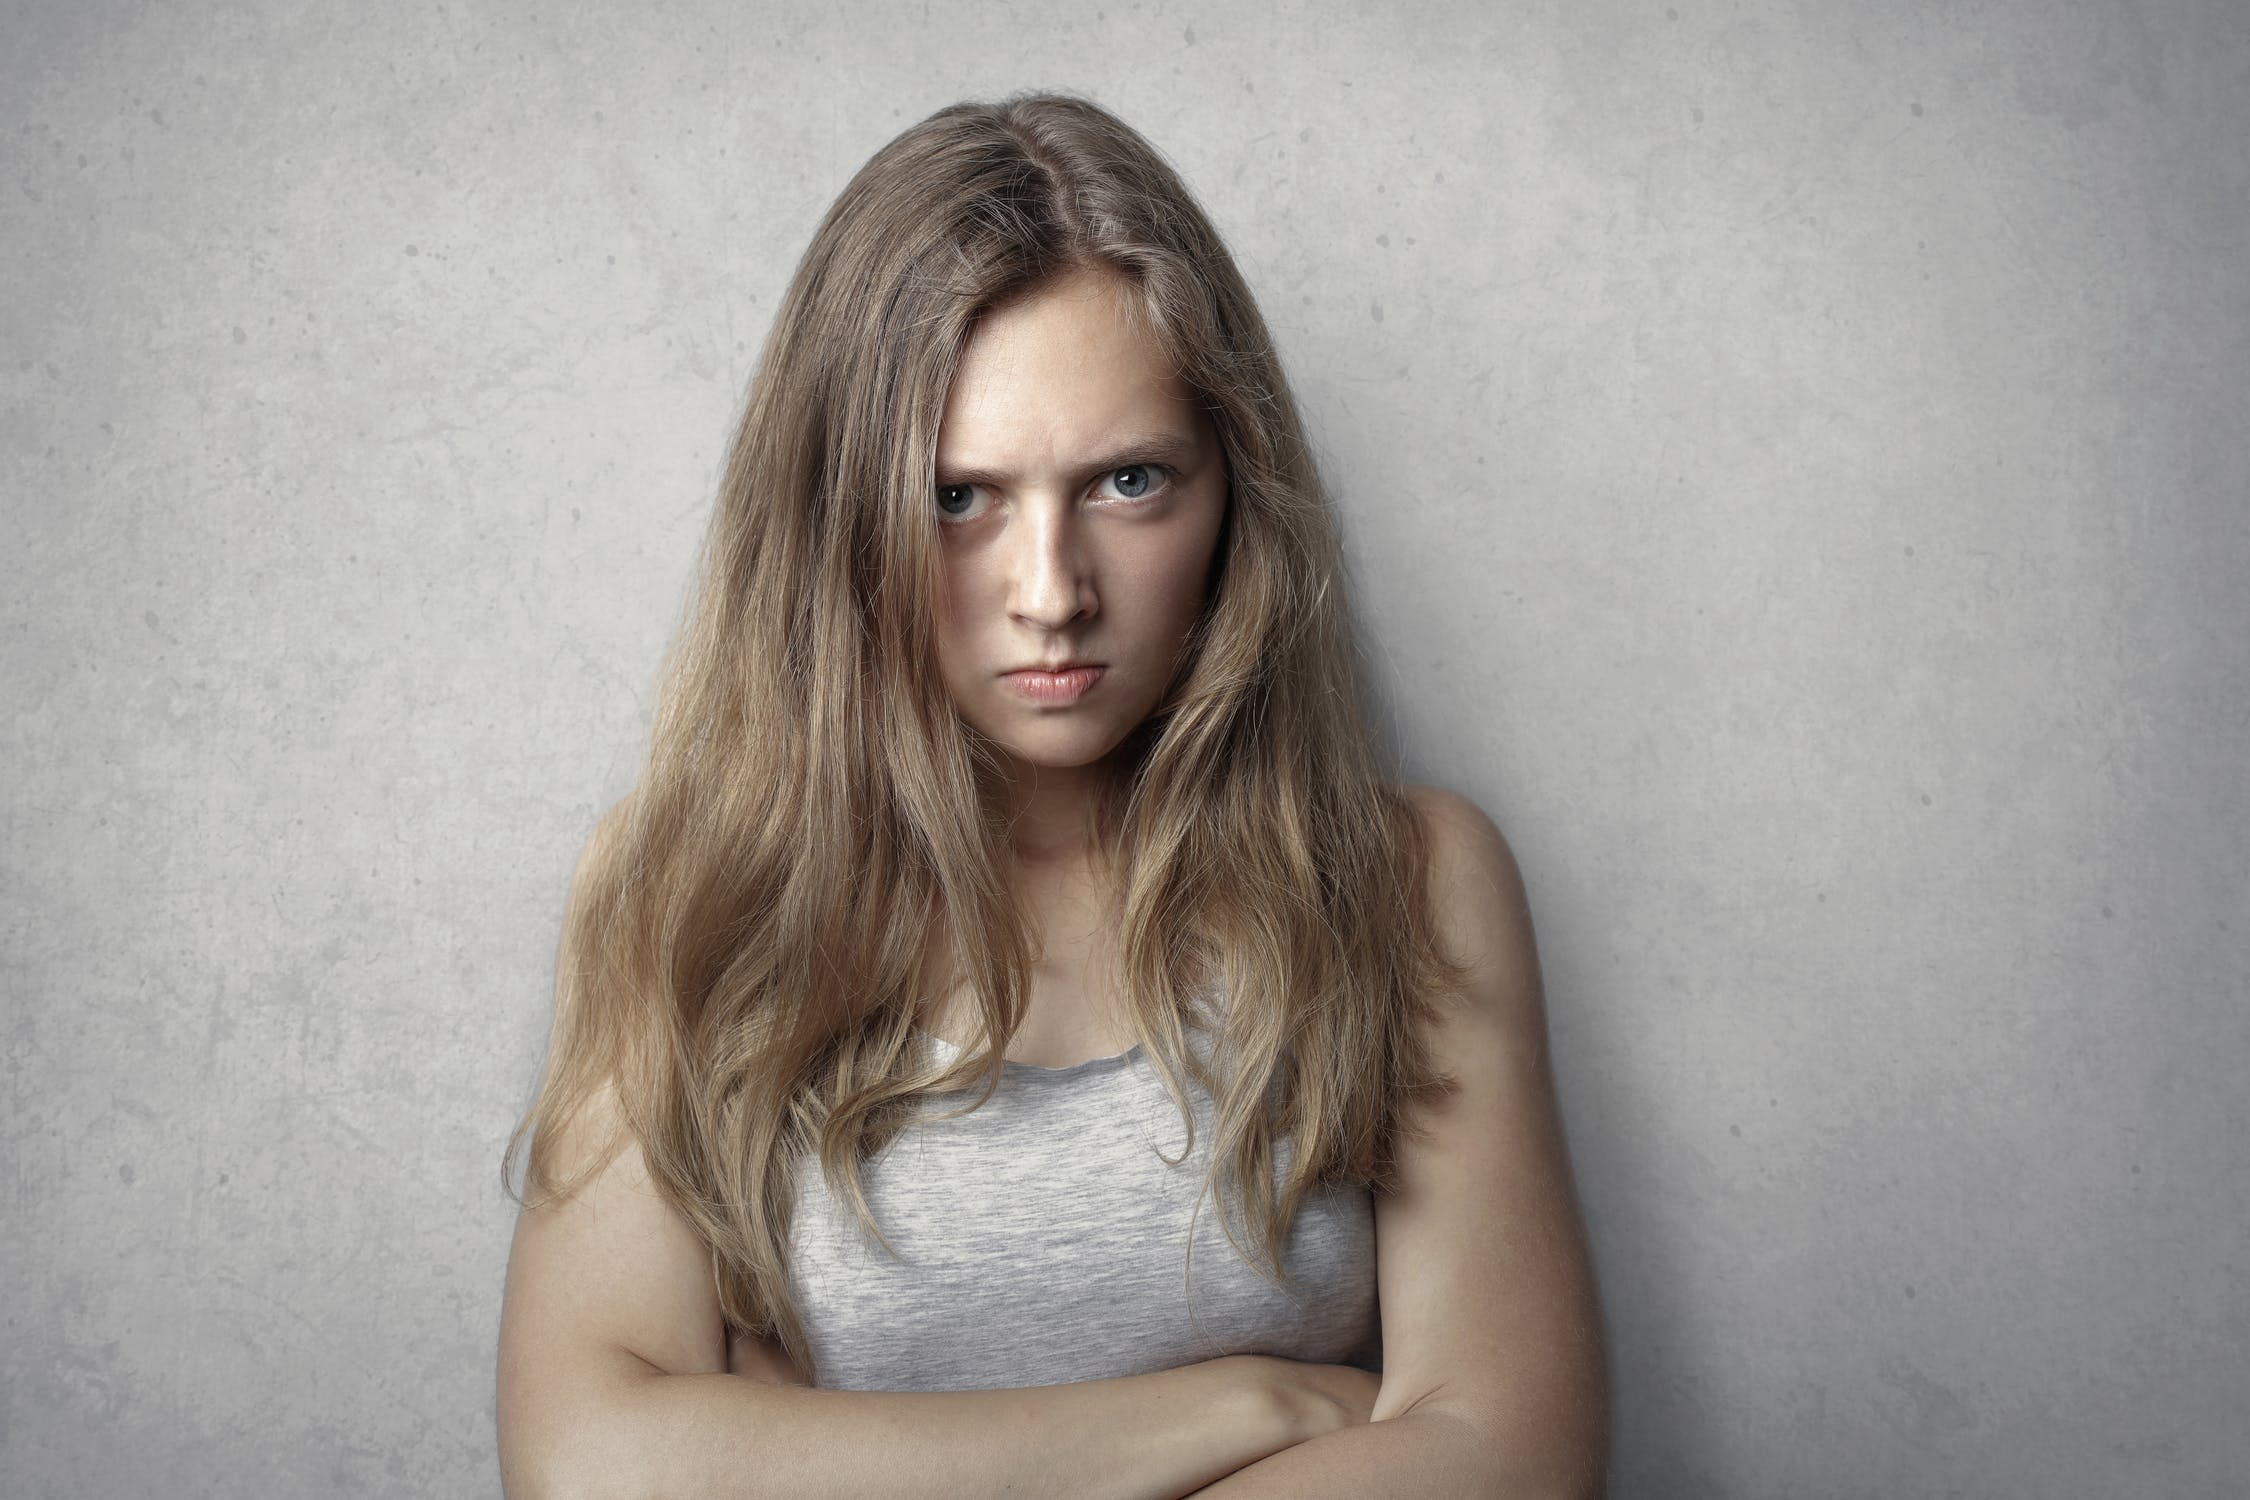 An angry daughter | Source: Pexels